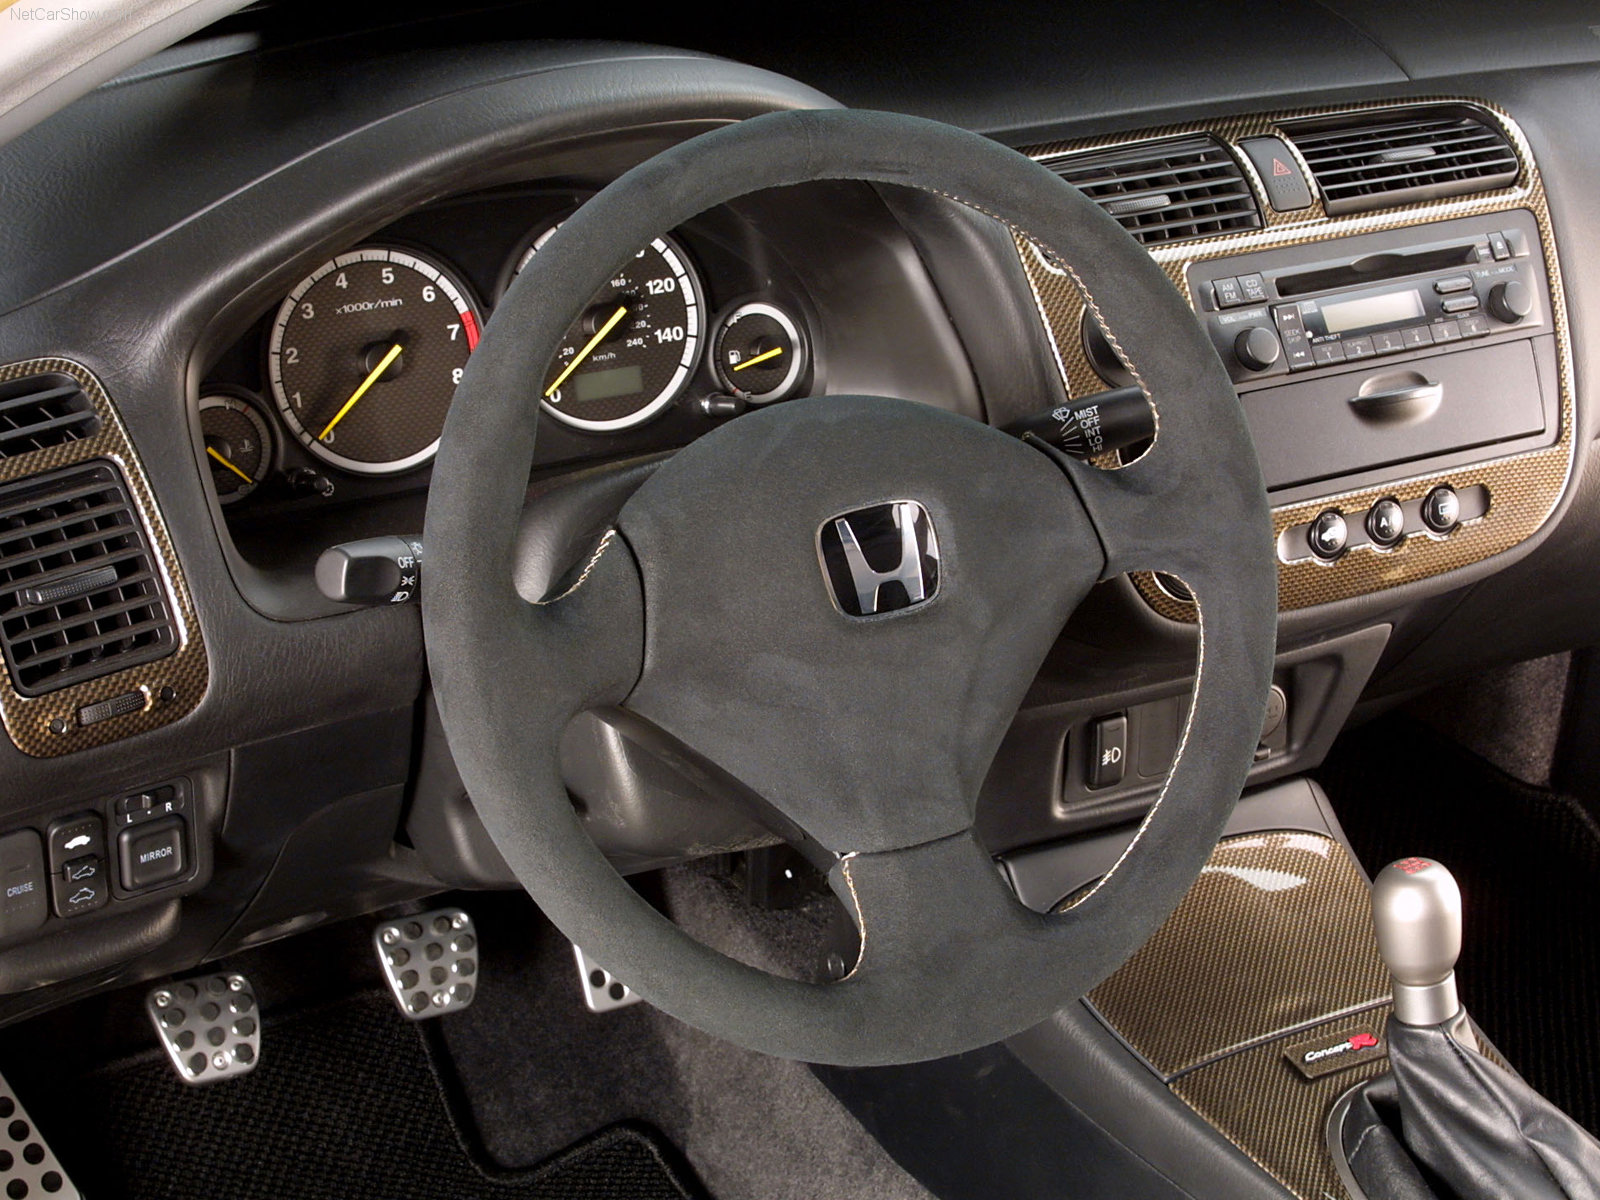 2001 honda civic interior colors